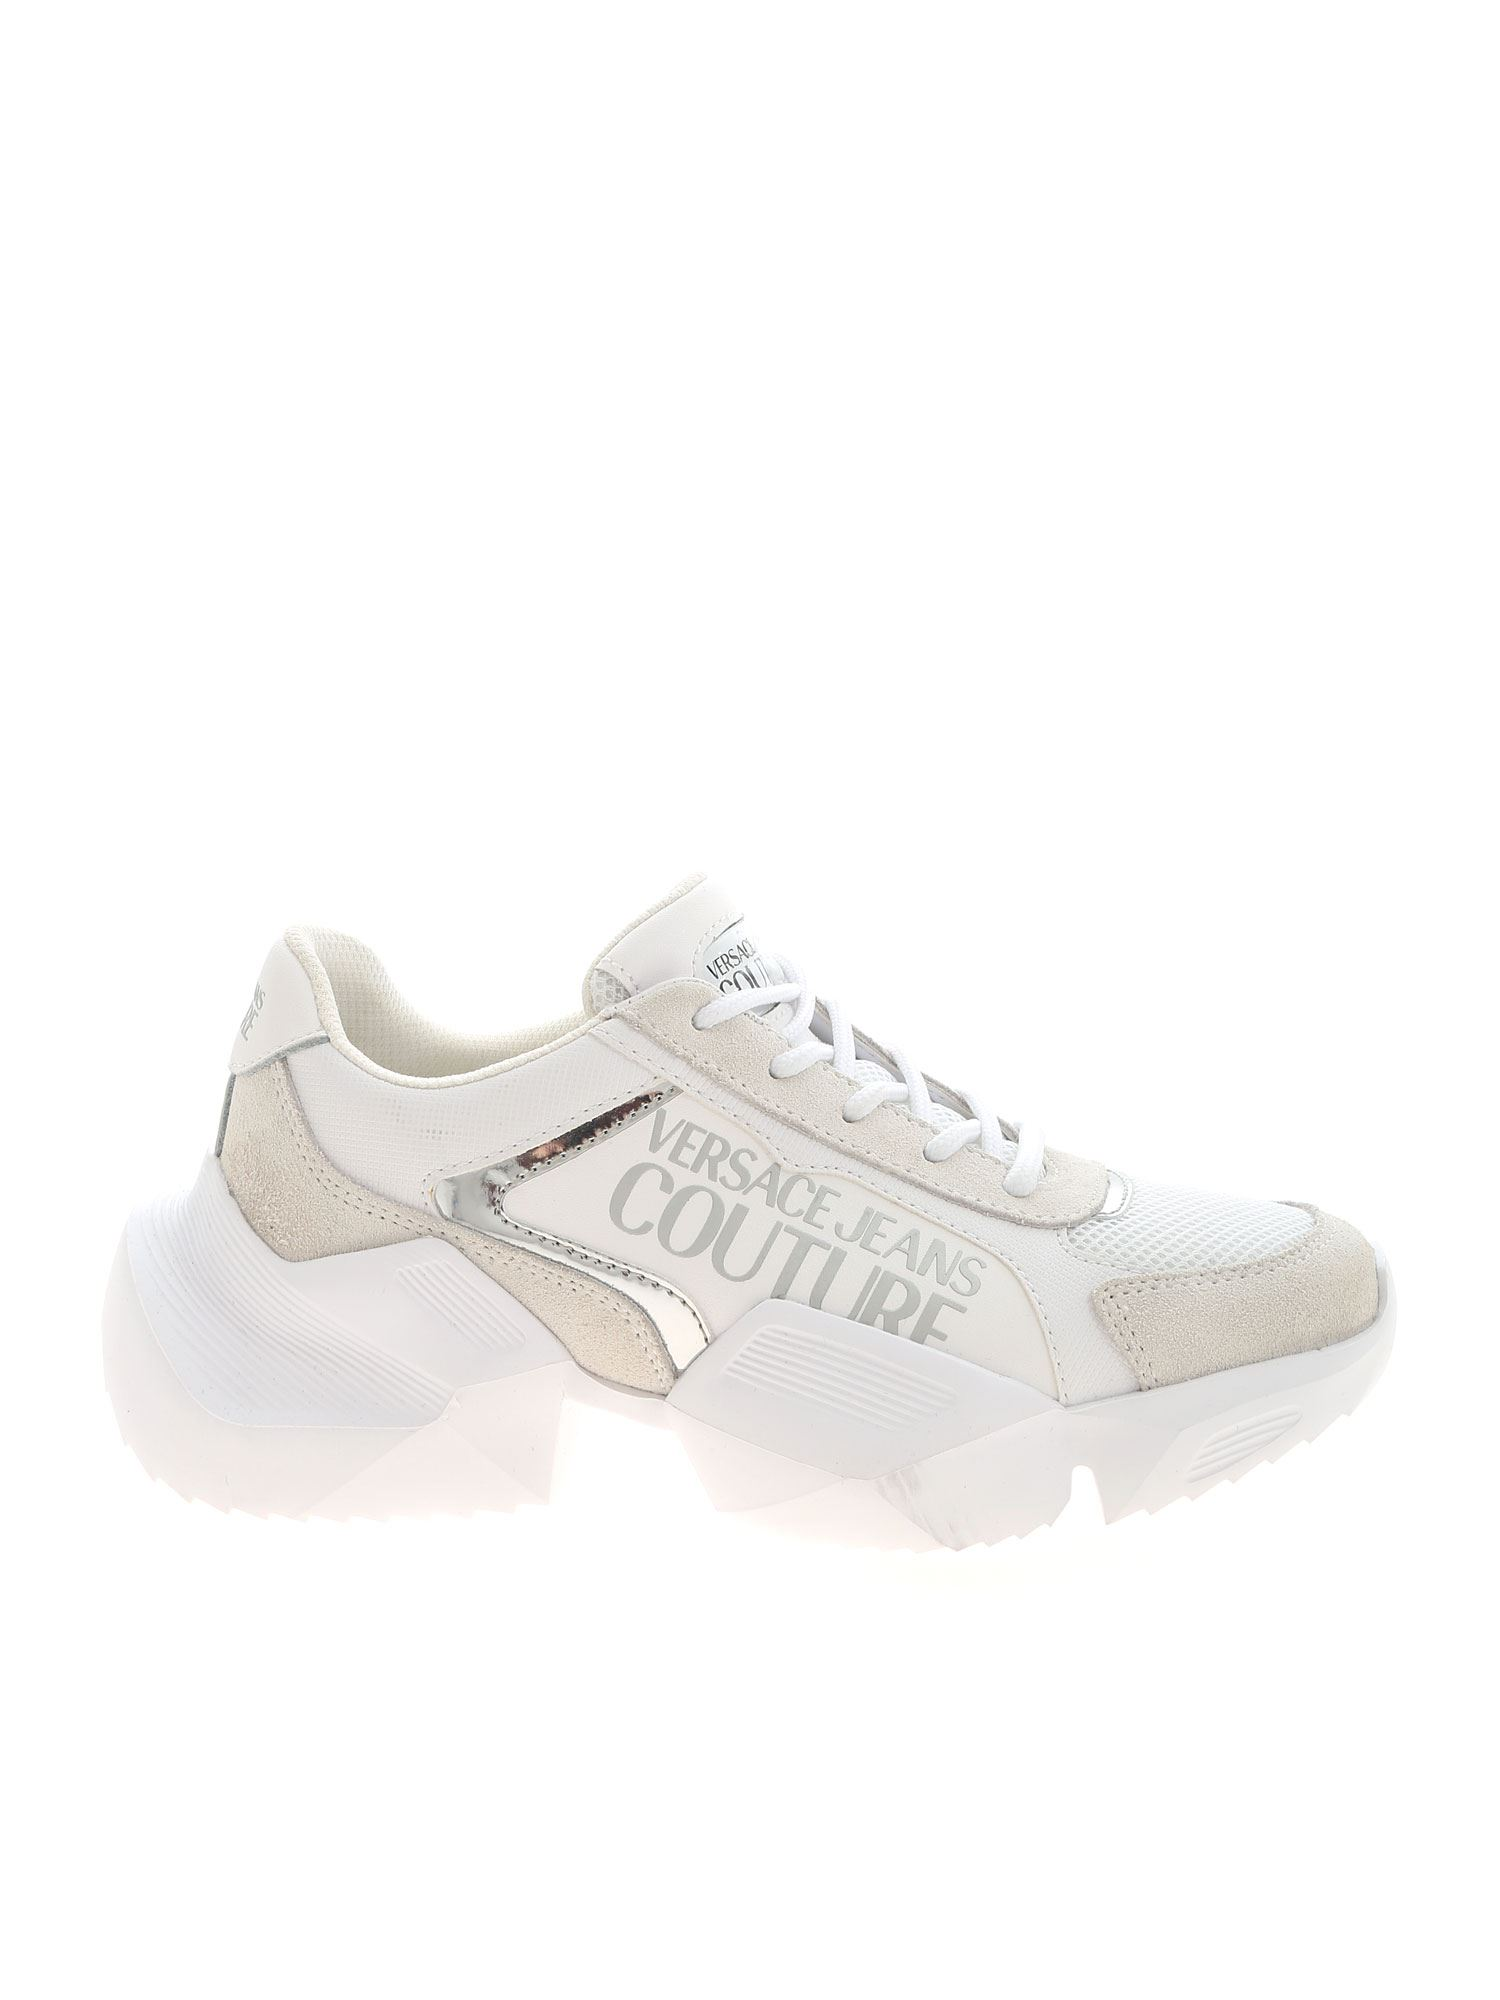 Versace Jeans Couture SILVER LOGO SNEAKERS IN WHITE